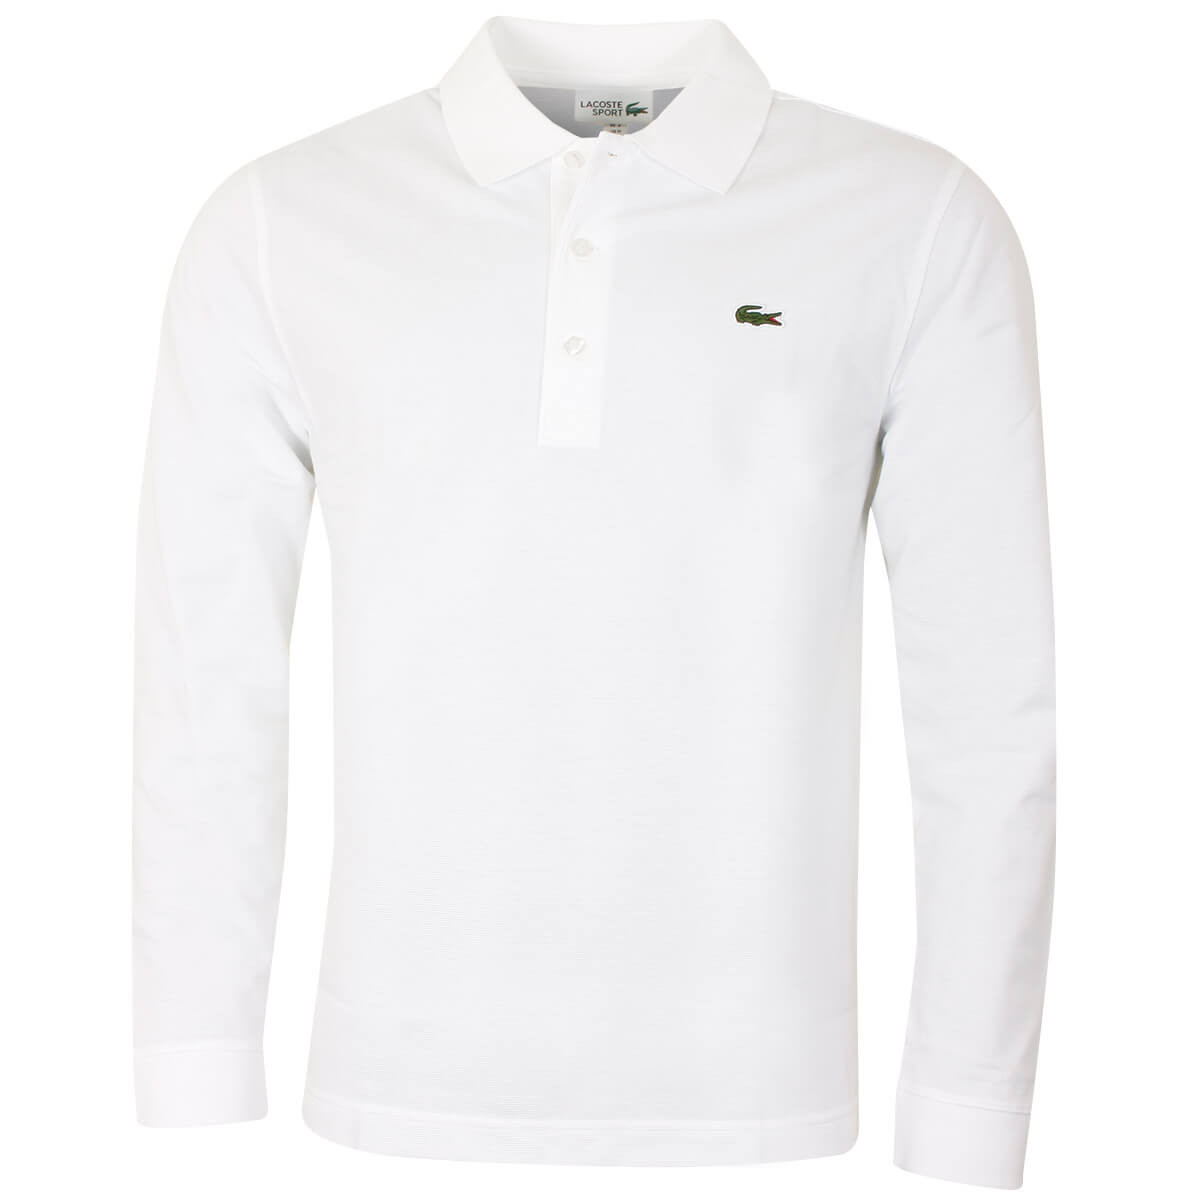 ad0046df76 Lacoste Mens 2019 Long Sleeve Ribbed Classic Polo Shirt